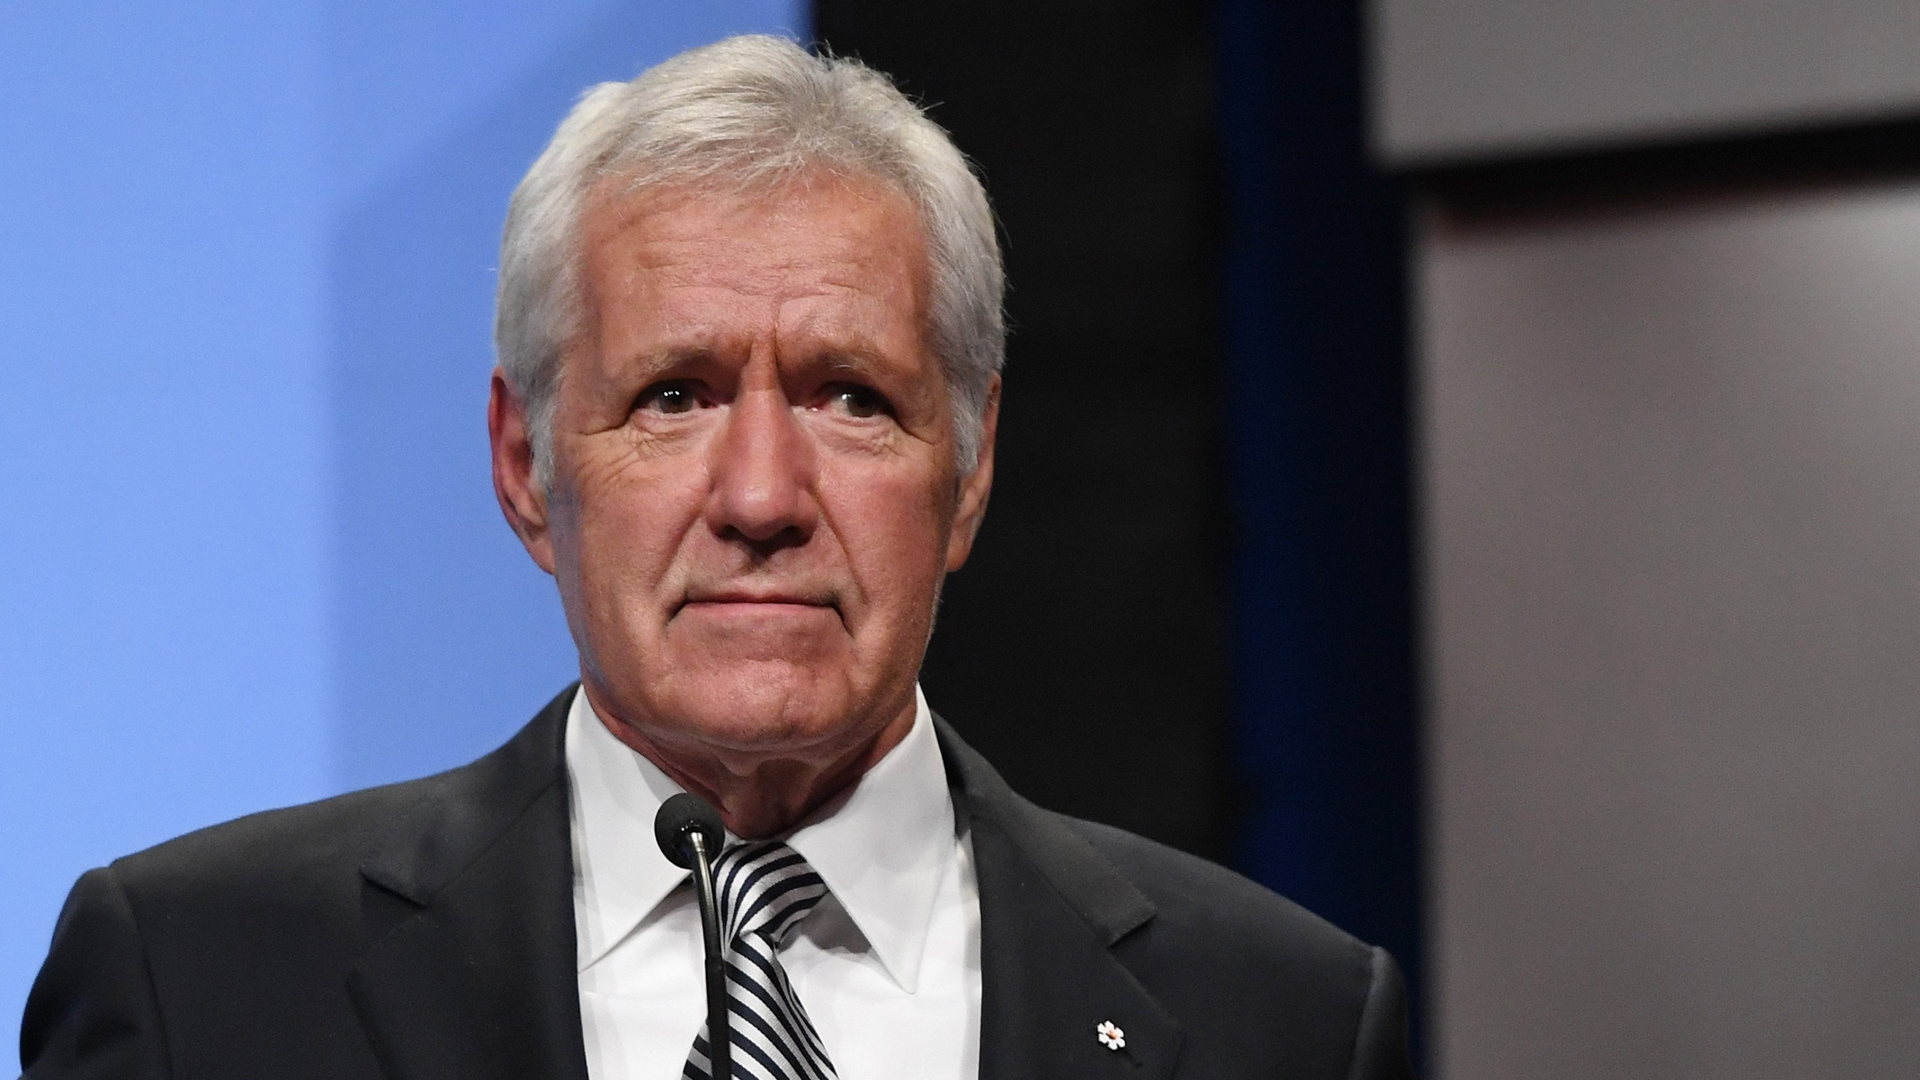 Alex Trebek is seen in a file photo. (Credit: Ethan Miller/Getty Images)